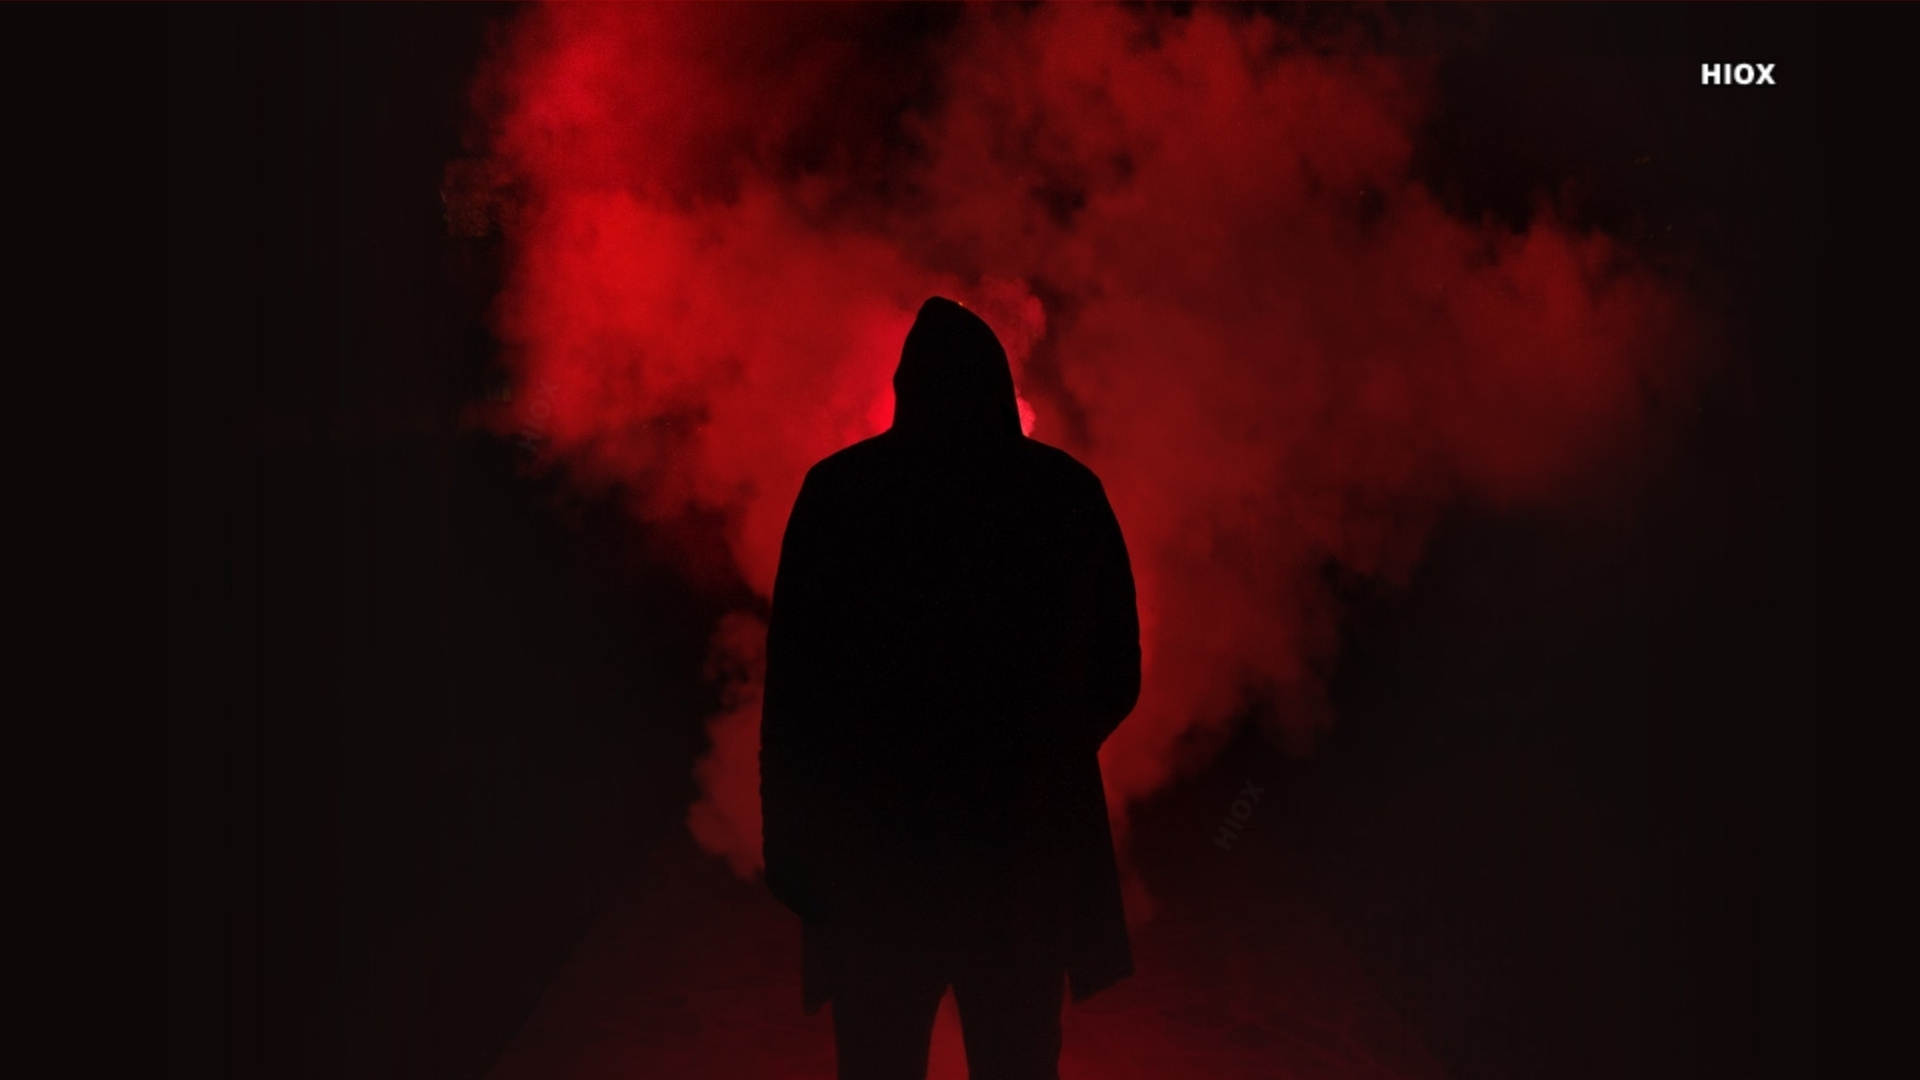 Silhouette Of A Man In Red Smoke Hd Image